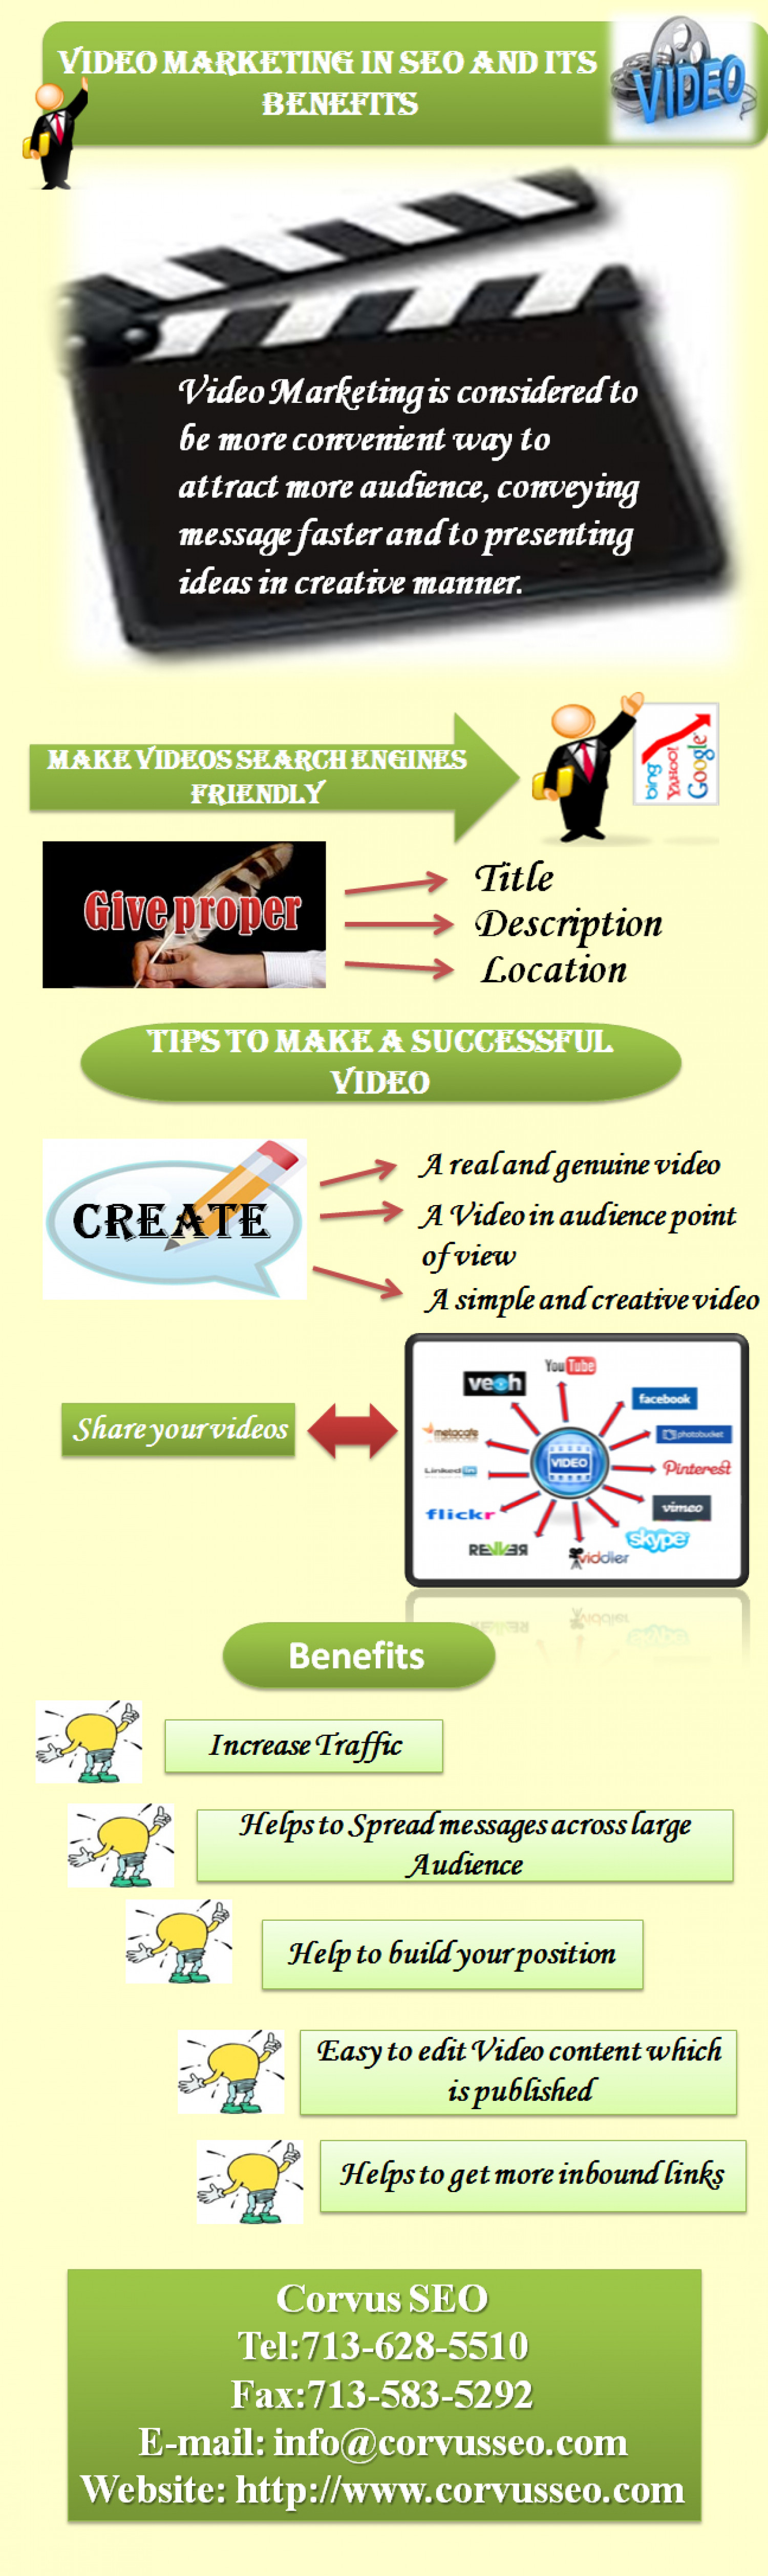 Video Marketing in SEO and its benefits Infographic